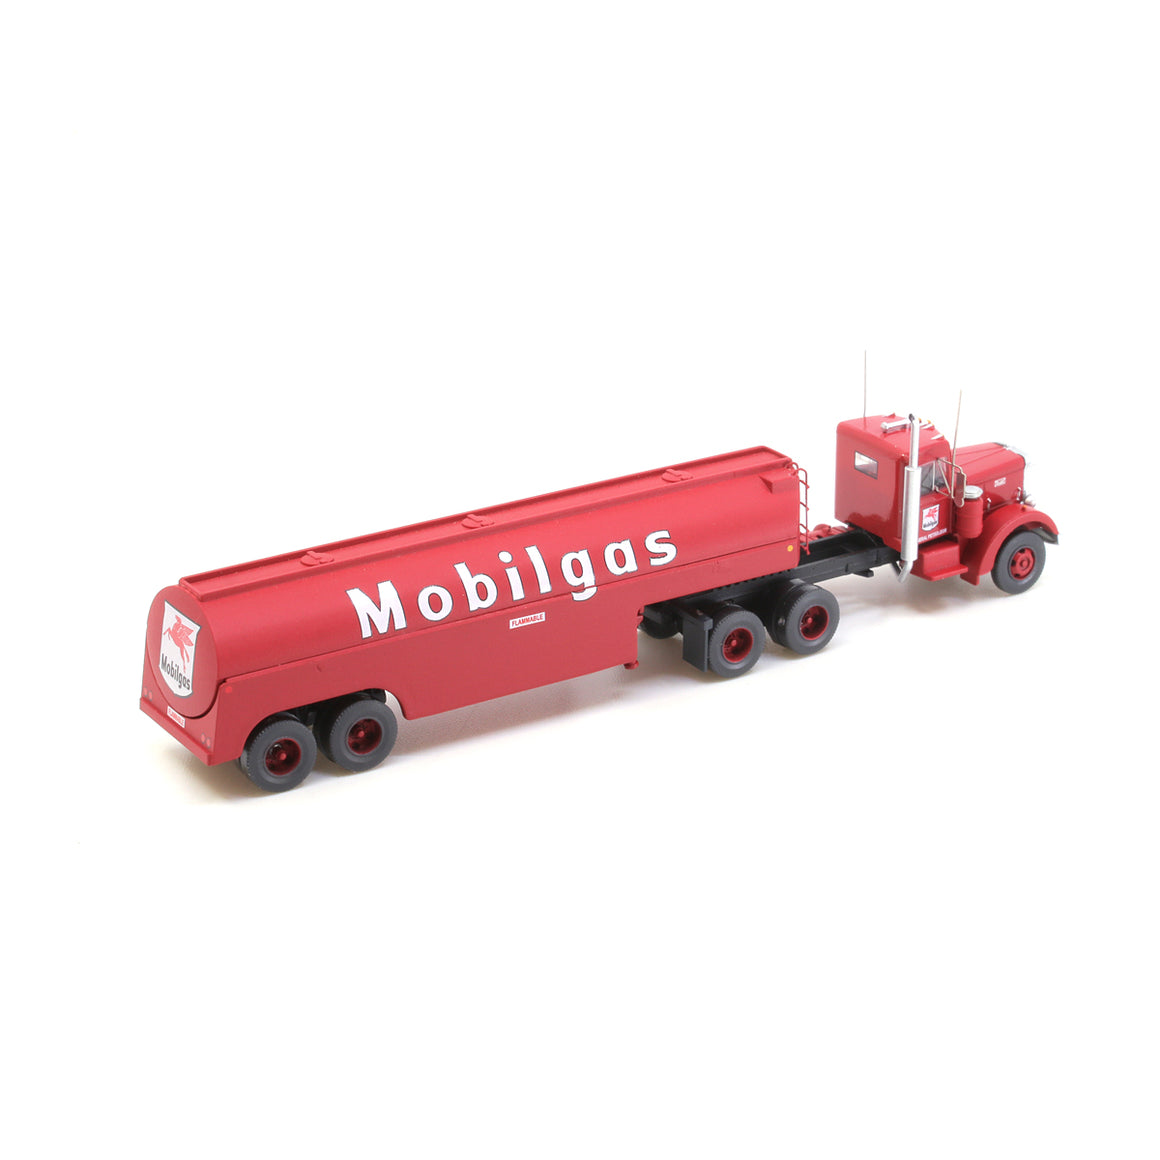 N Scale: Peterbilt 350 with Fuel Tank Trailer - Mobil